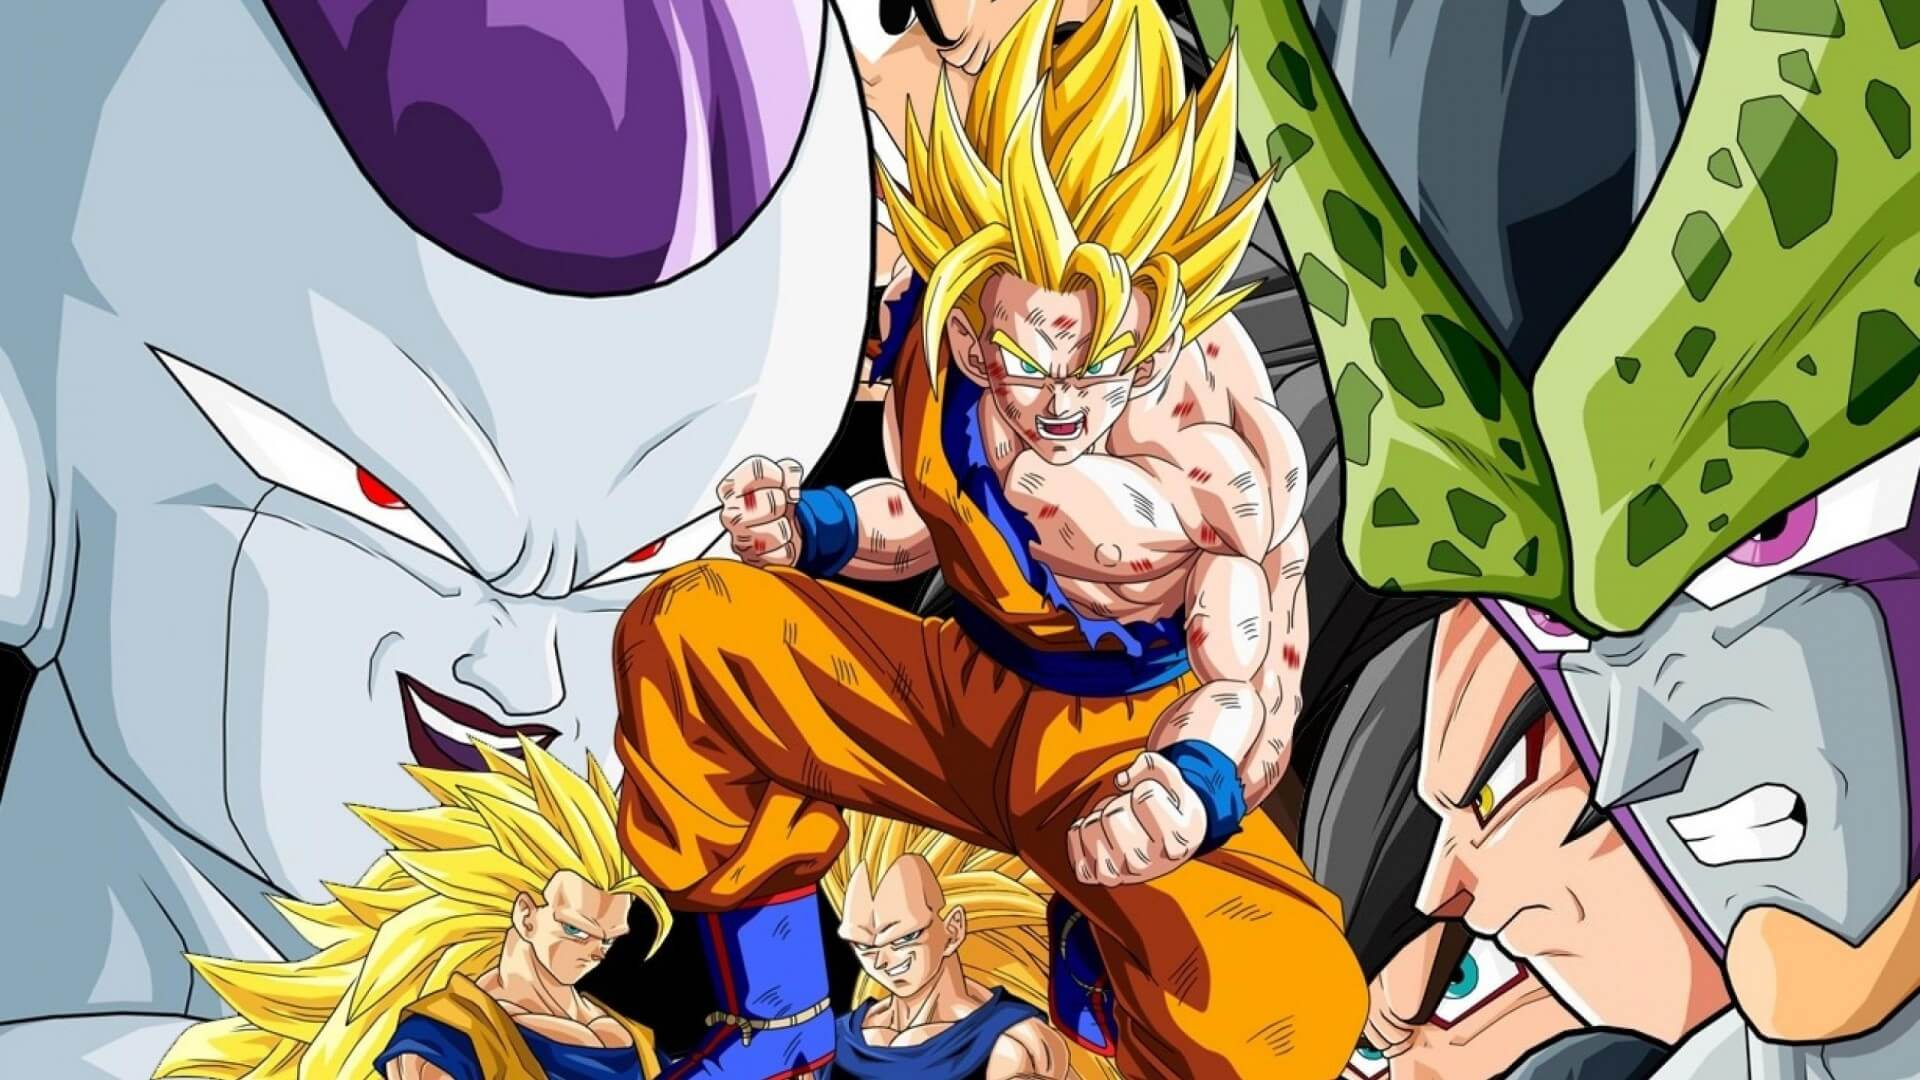 Dragon Ball Wallpaper 3d Hd Download Dragon Ball Z Goku Super Saiyan 1000 Wallpaper